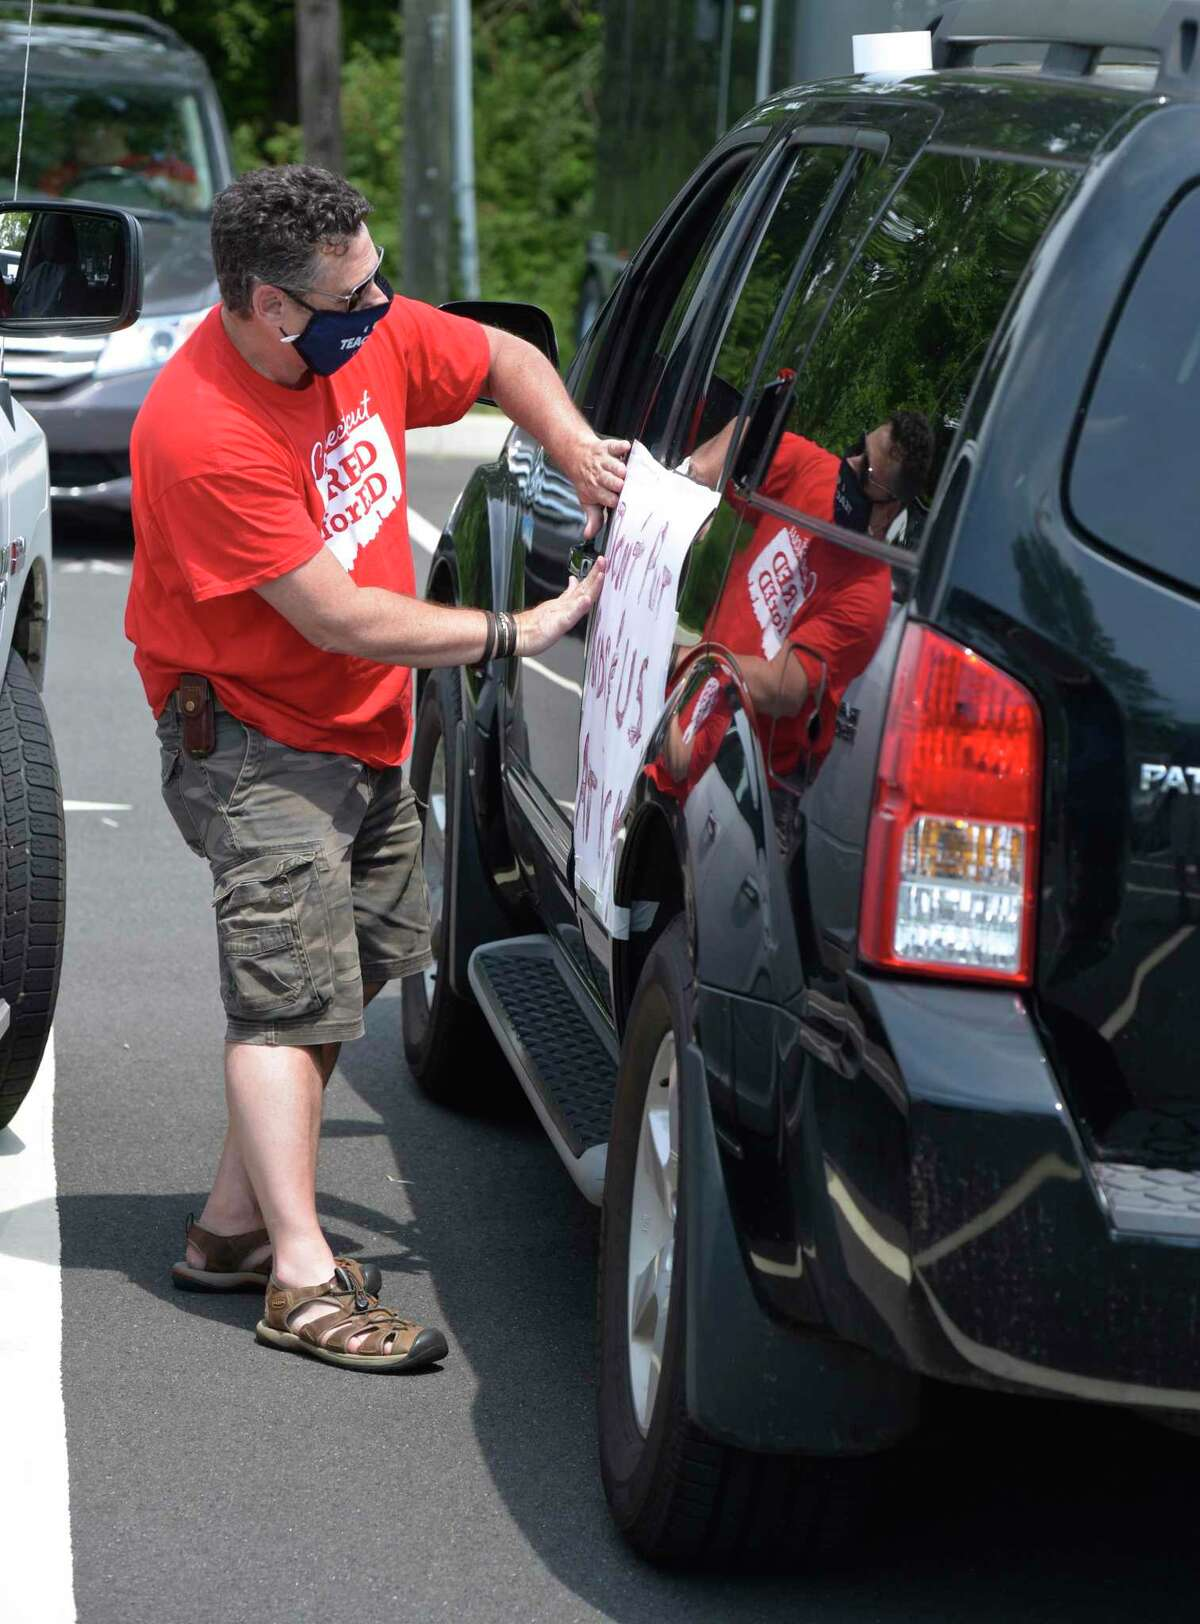 Thomas Ross, of Danbury, with Danbury High School, tapes a sign to his car as teachers in Danbury joined colleagues, parents, students and community members across the state who held simultaneous School Safety First Car Caravans demanding the state provide for safety, equity and funding when schools reopen.